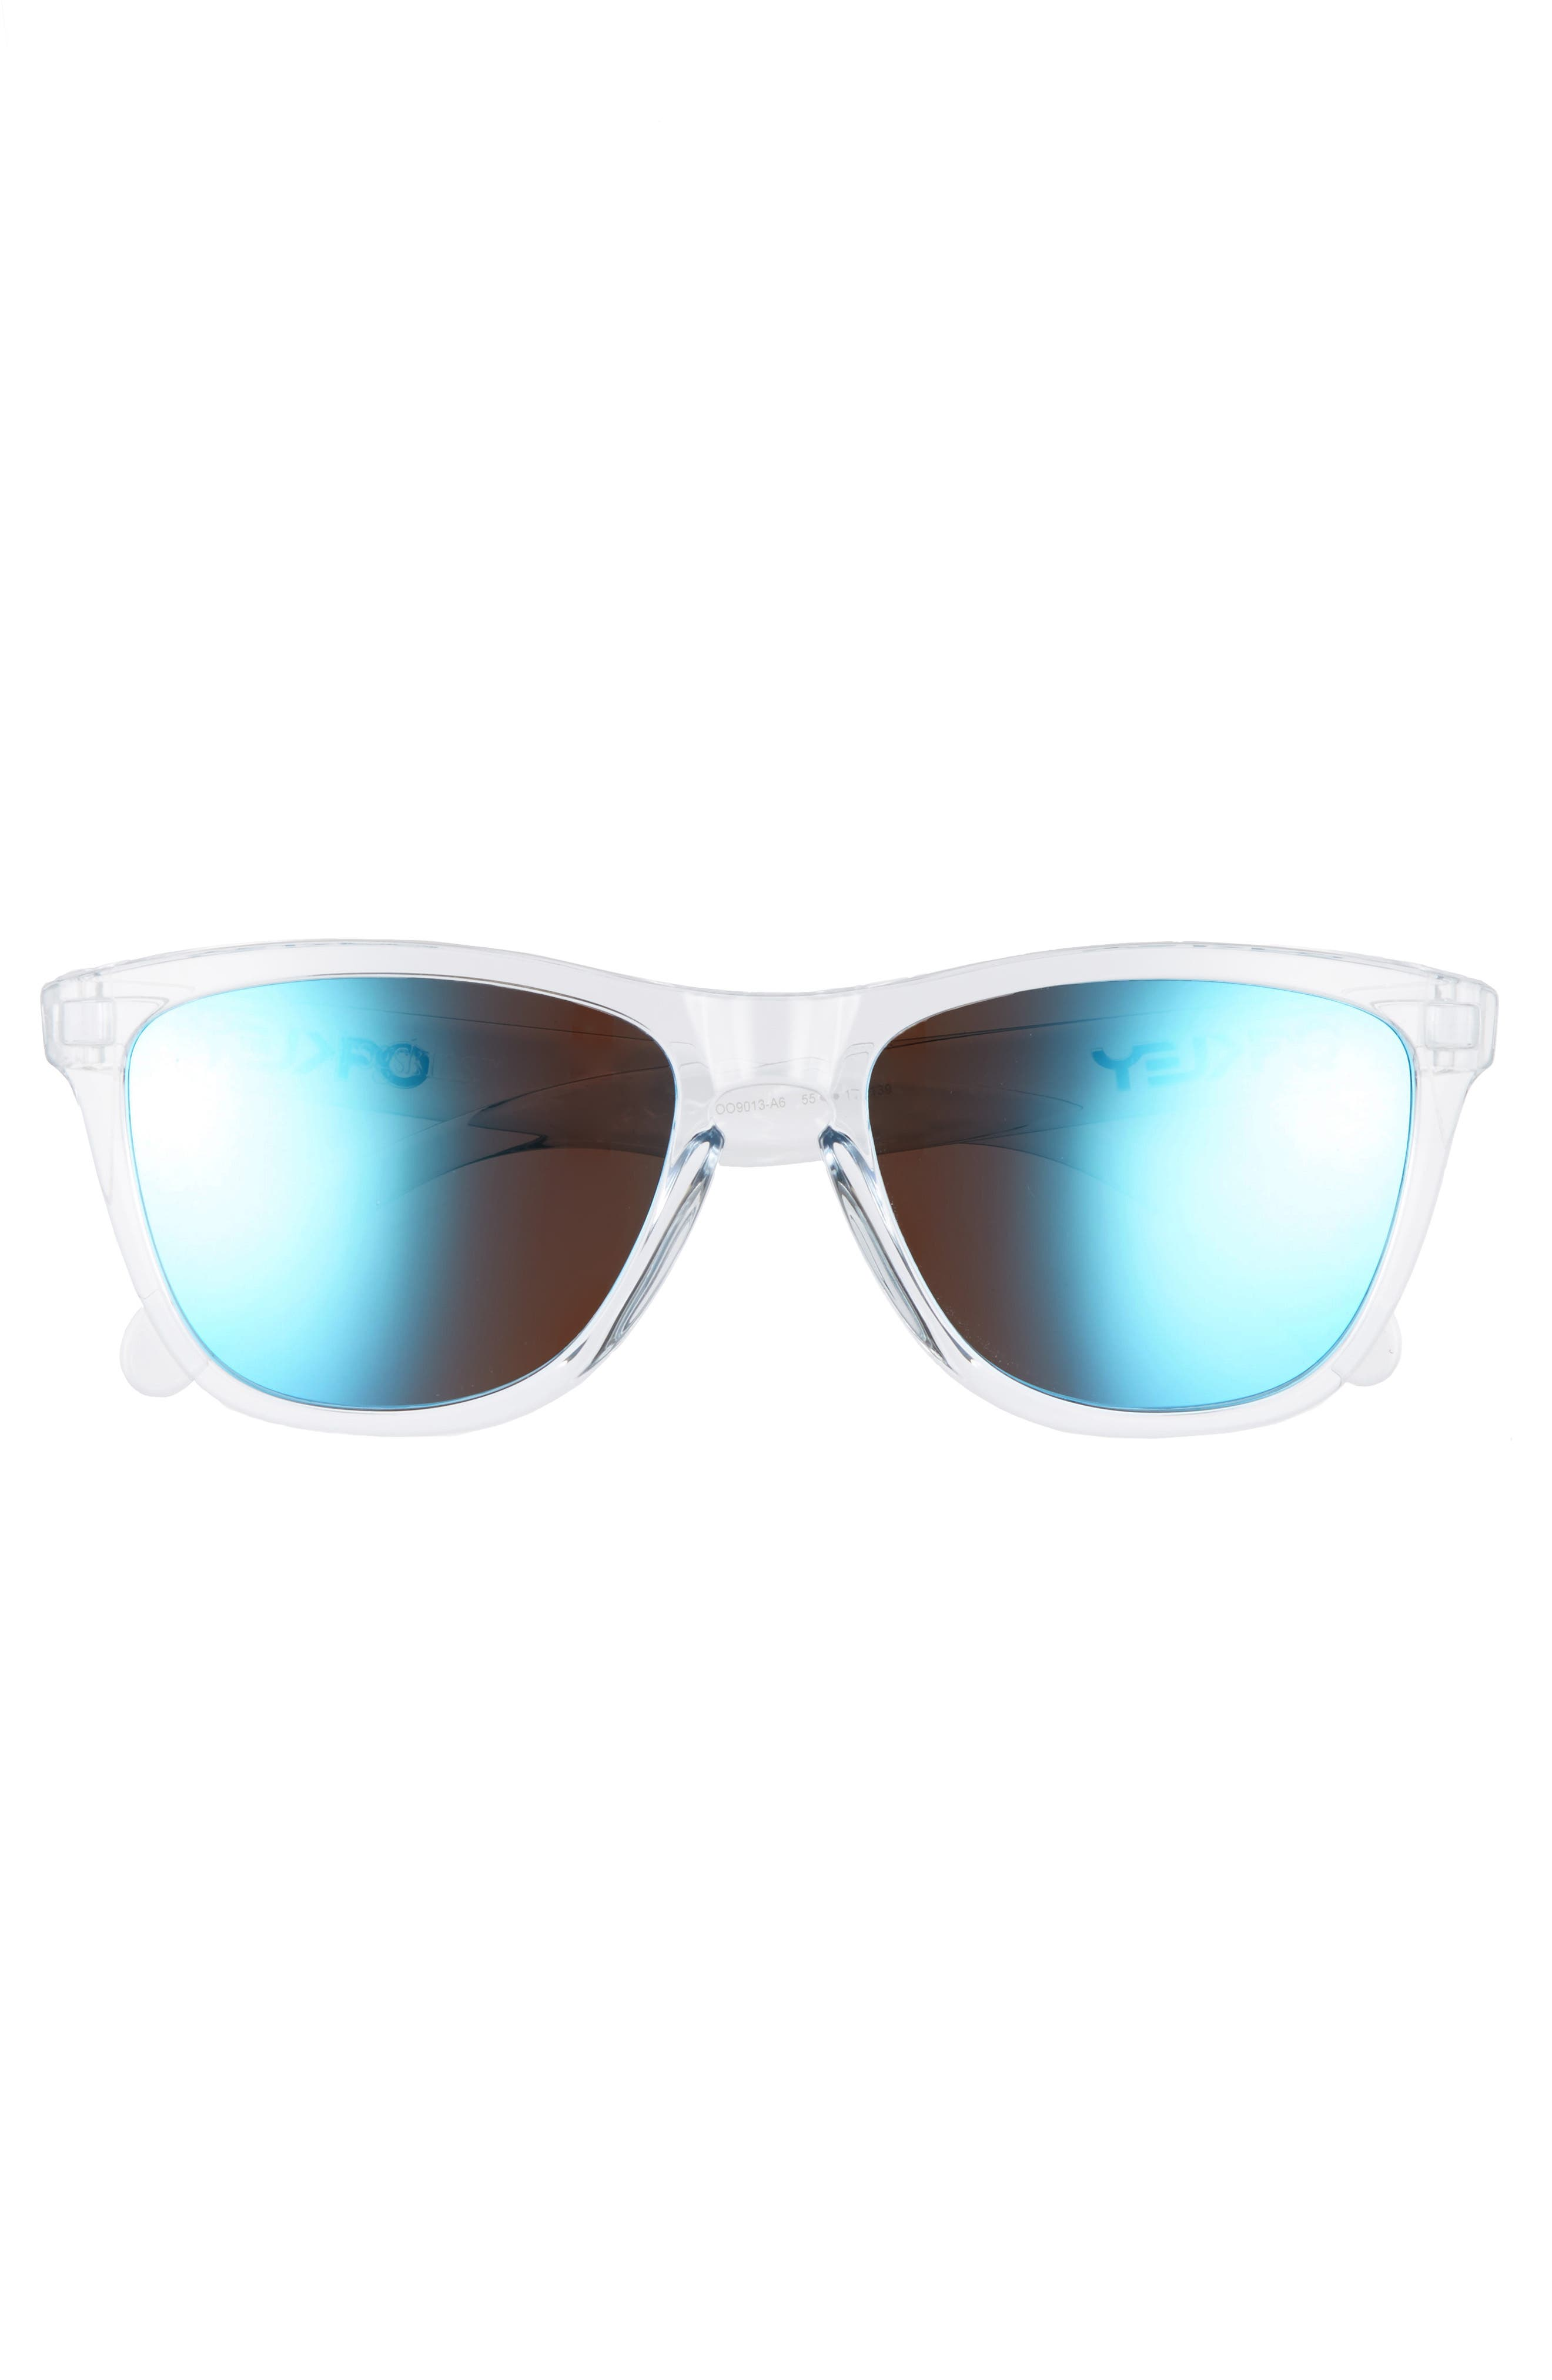 Frogskins<sup>®</sup> 55mm Sunglasses,                             Alternate thumbnail 2, color,                             Sapphire Iridescent